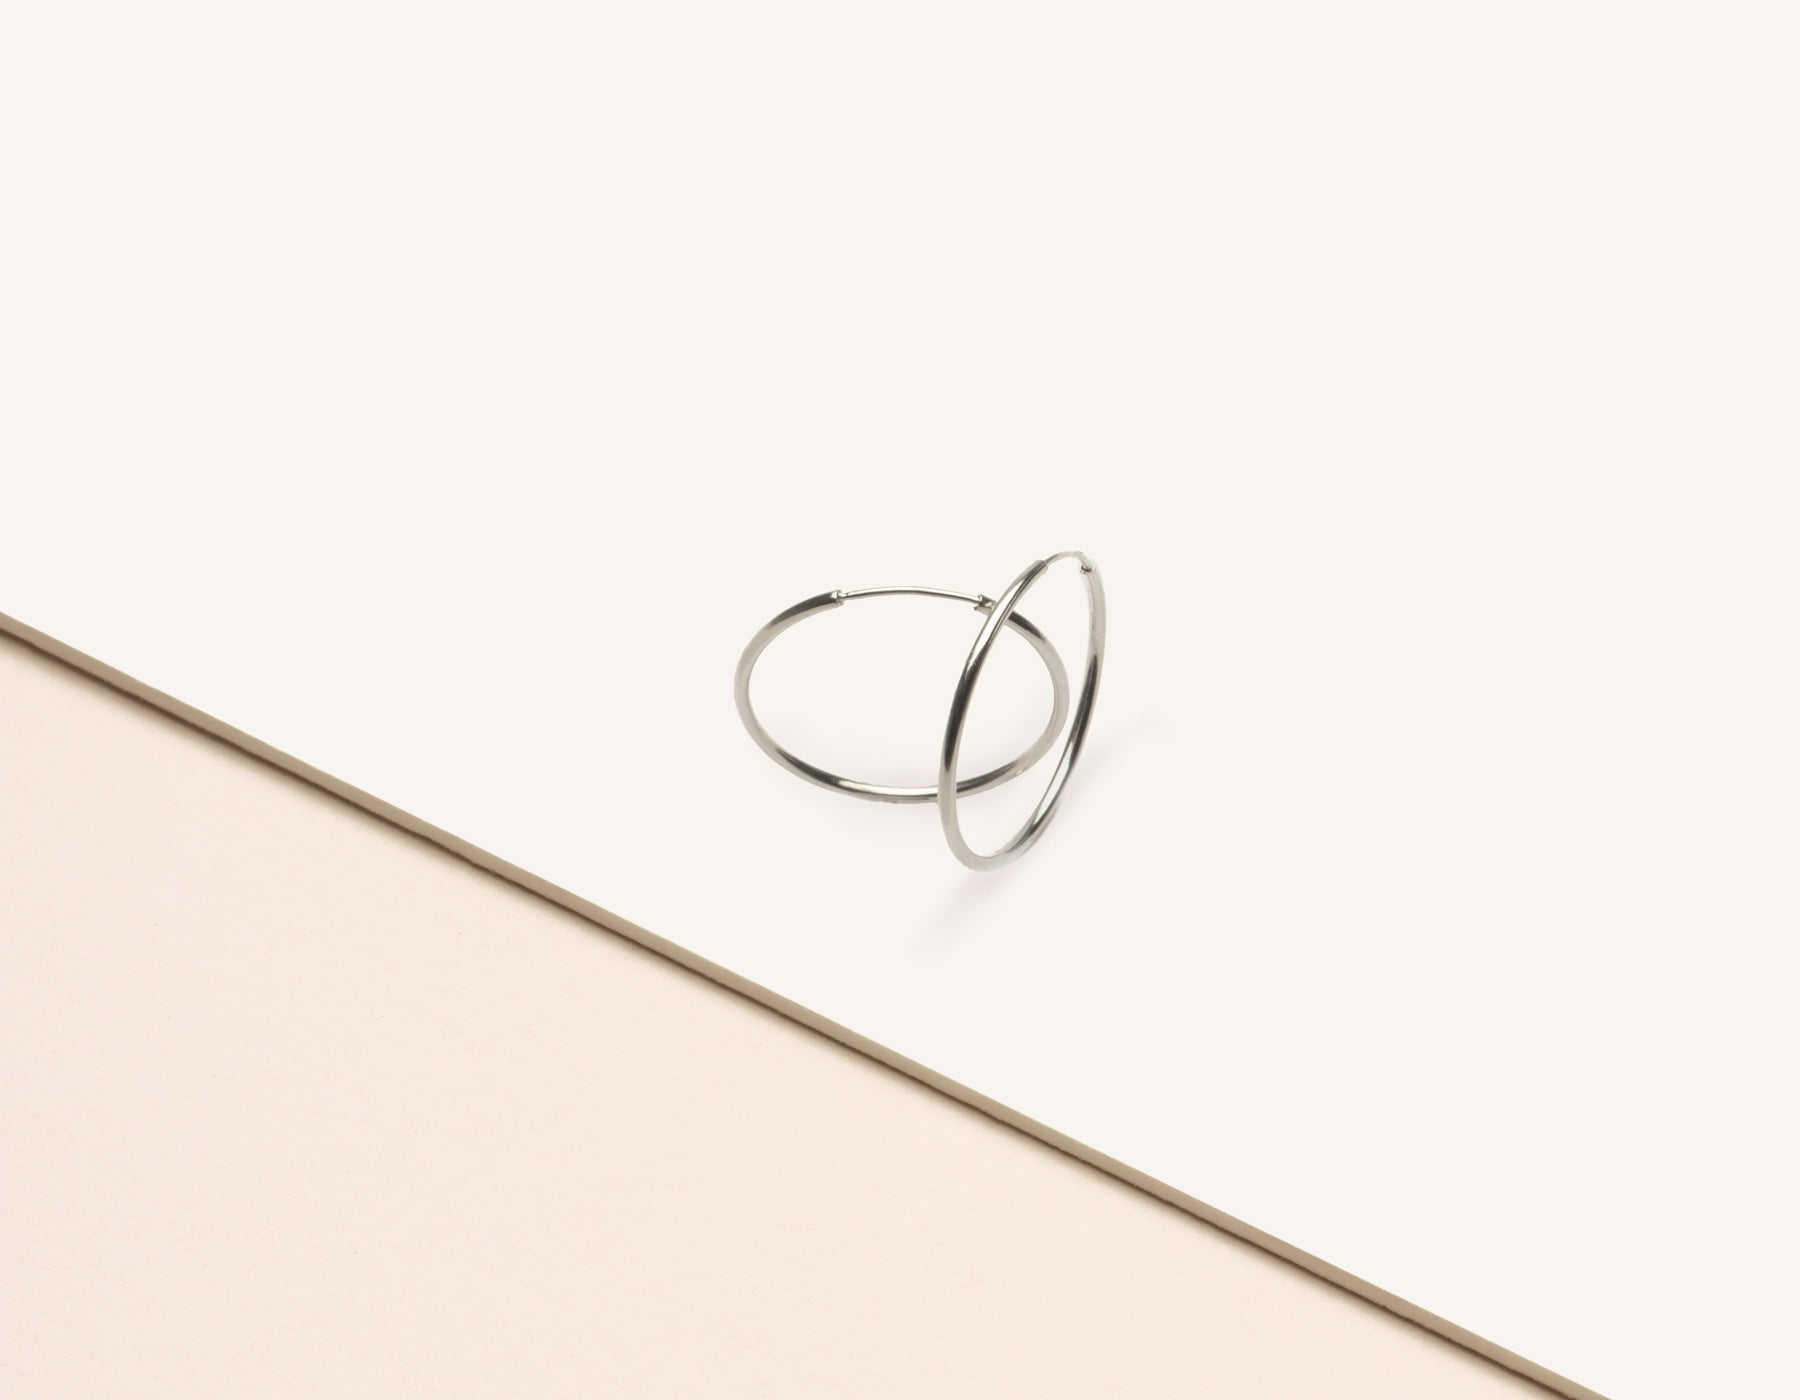 modern minimalist Medium Lightweight Hoop earrings 14k solid gold Vrai & Oro sustainable jewelry, 14K White Gold